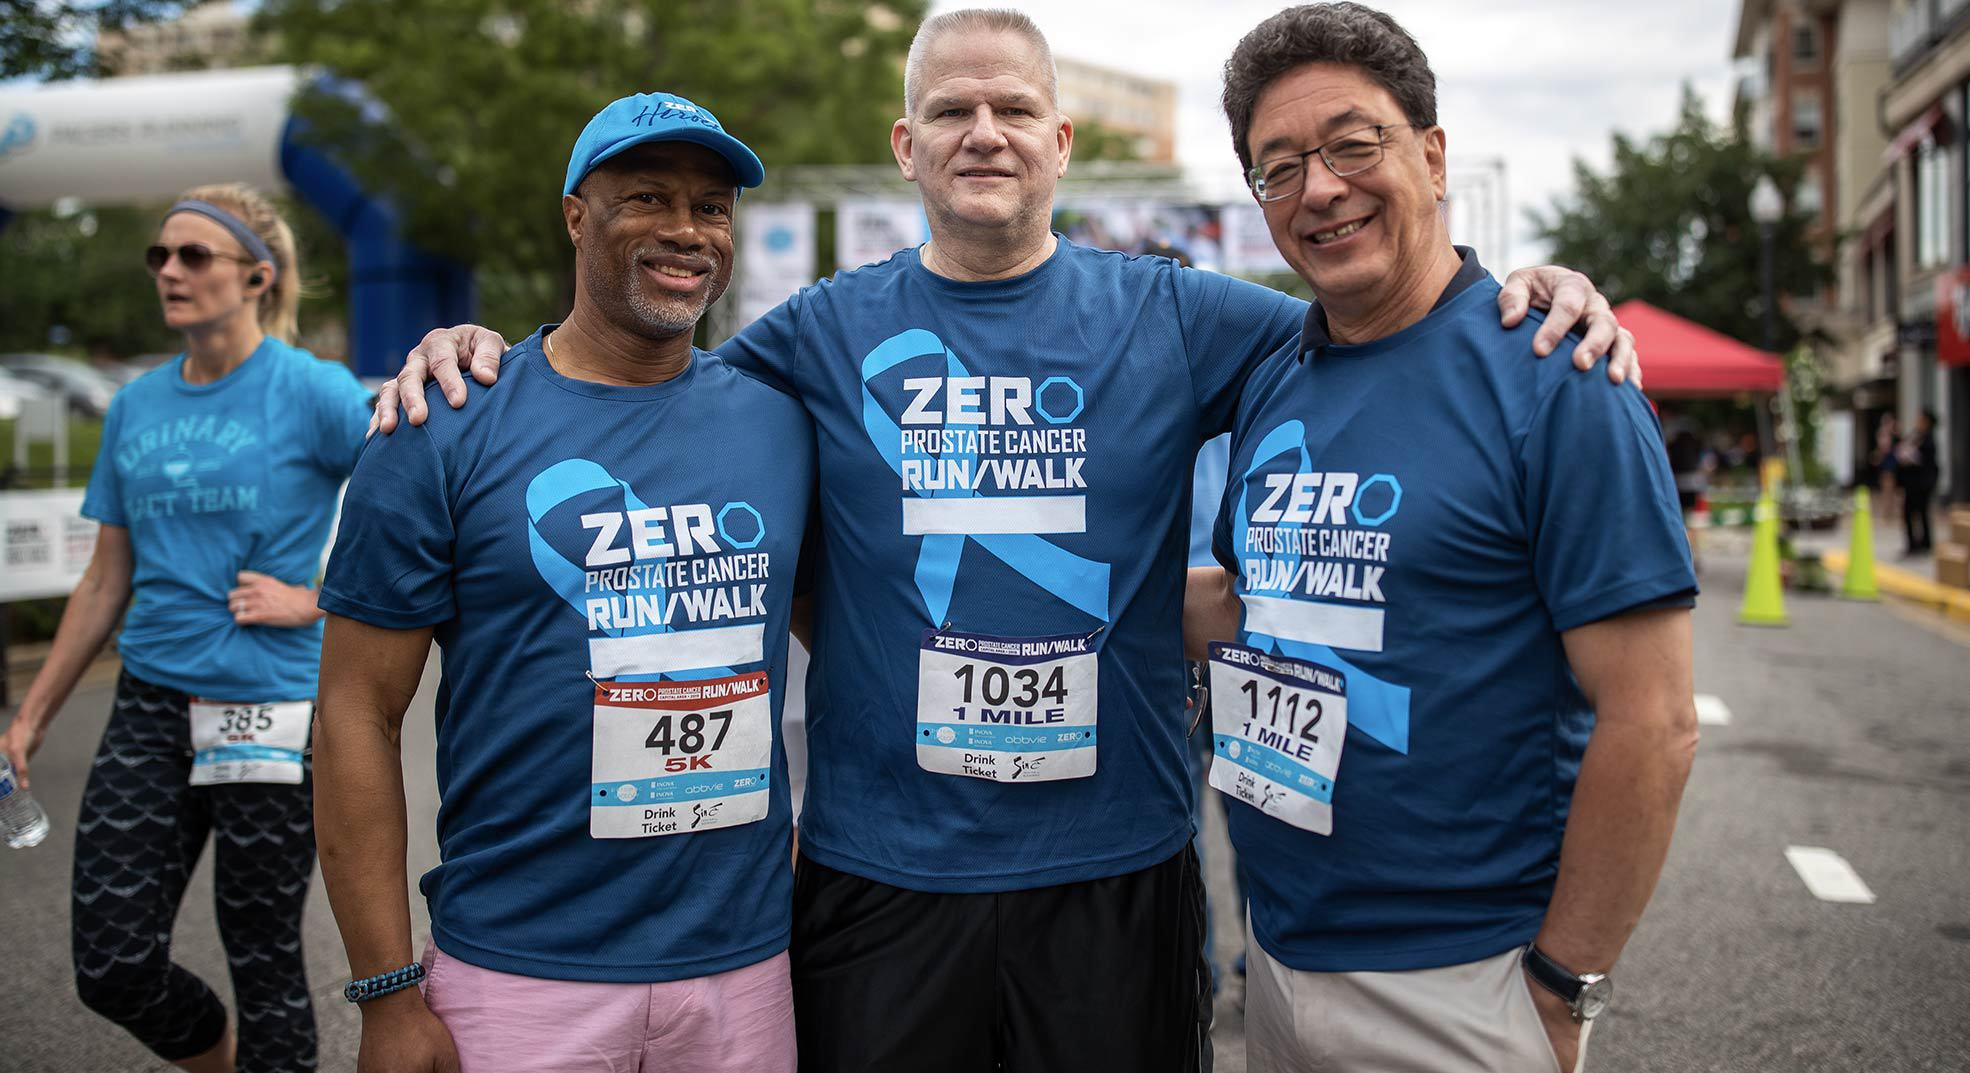 DISCOUNT from March 19 – March 26 REGISTER TODAY !!! MARK YOUR CALENDARS FOR THE 2020 VIRGINIA BEACH/HAMPTON ROADS ZERO END PROSTATE CANCER WALK/RUN